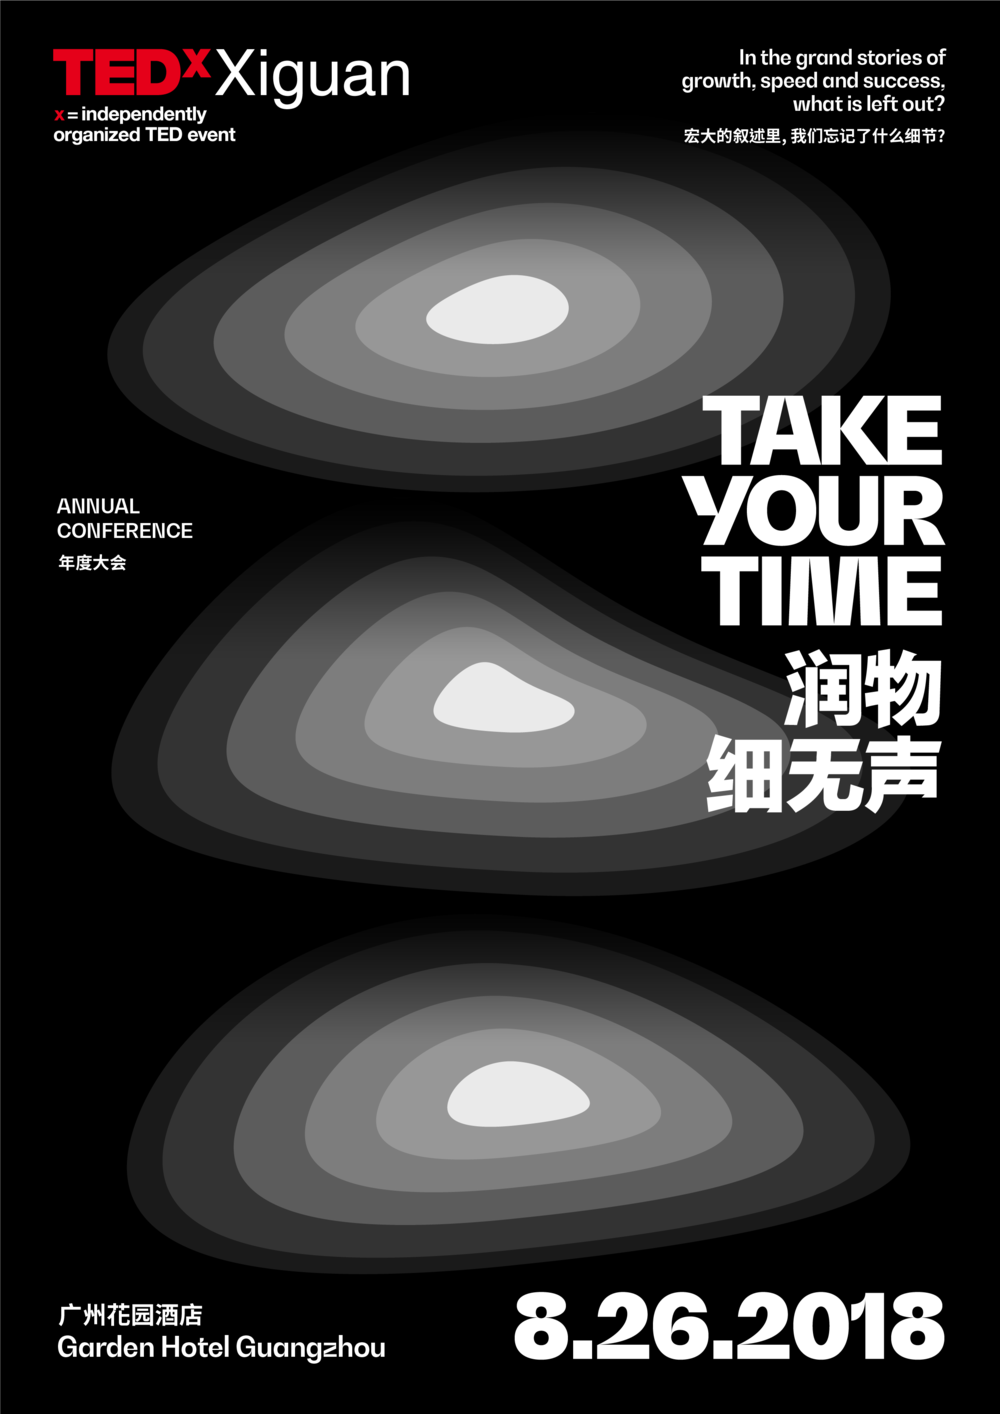 0722_TEDxXiguan_2018_poster_RGB-PNG24.png